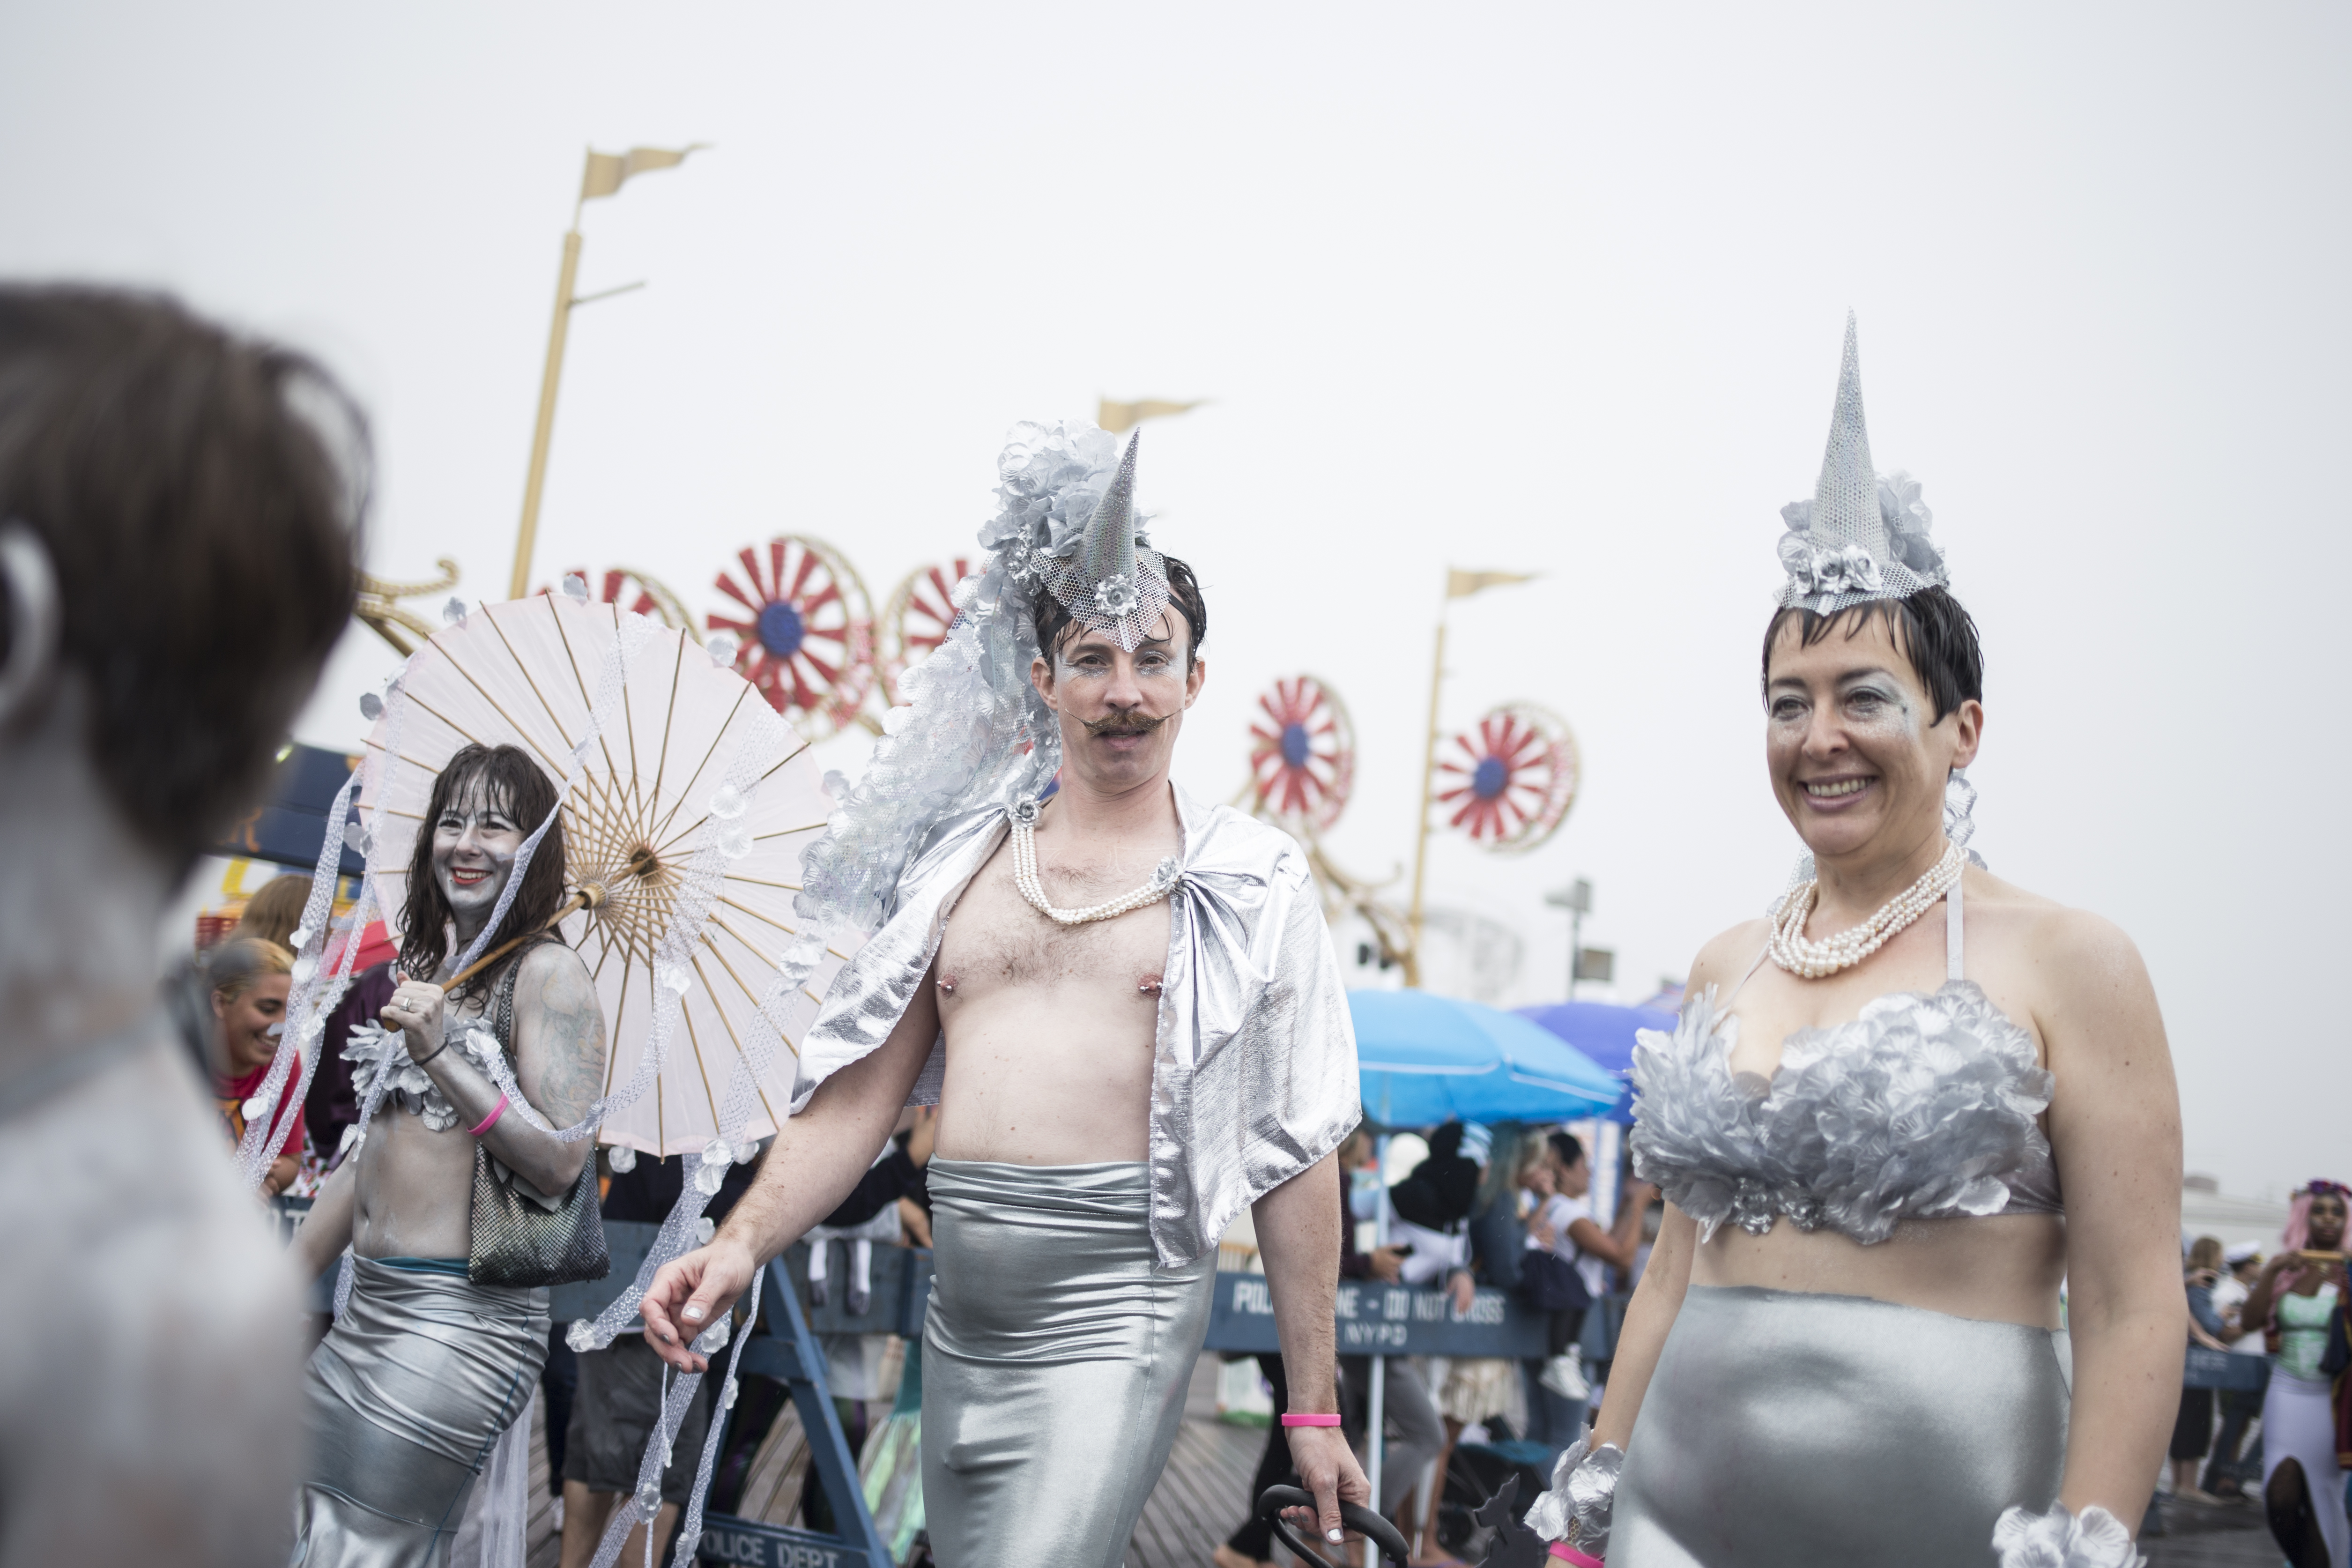 Fins And Skin On Display At Coney Island's Annual Mermaid Parade